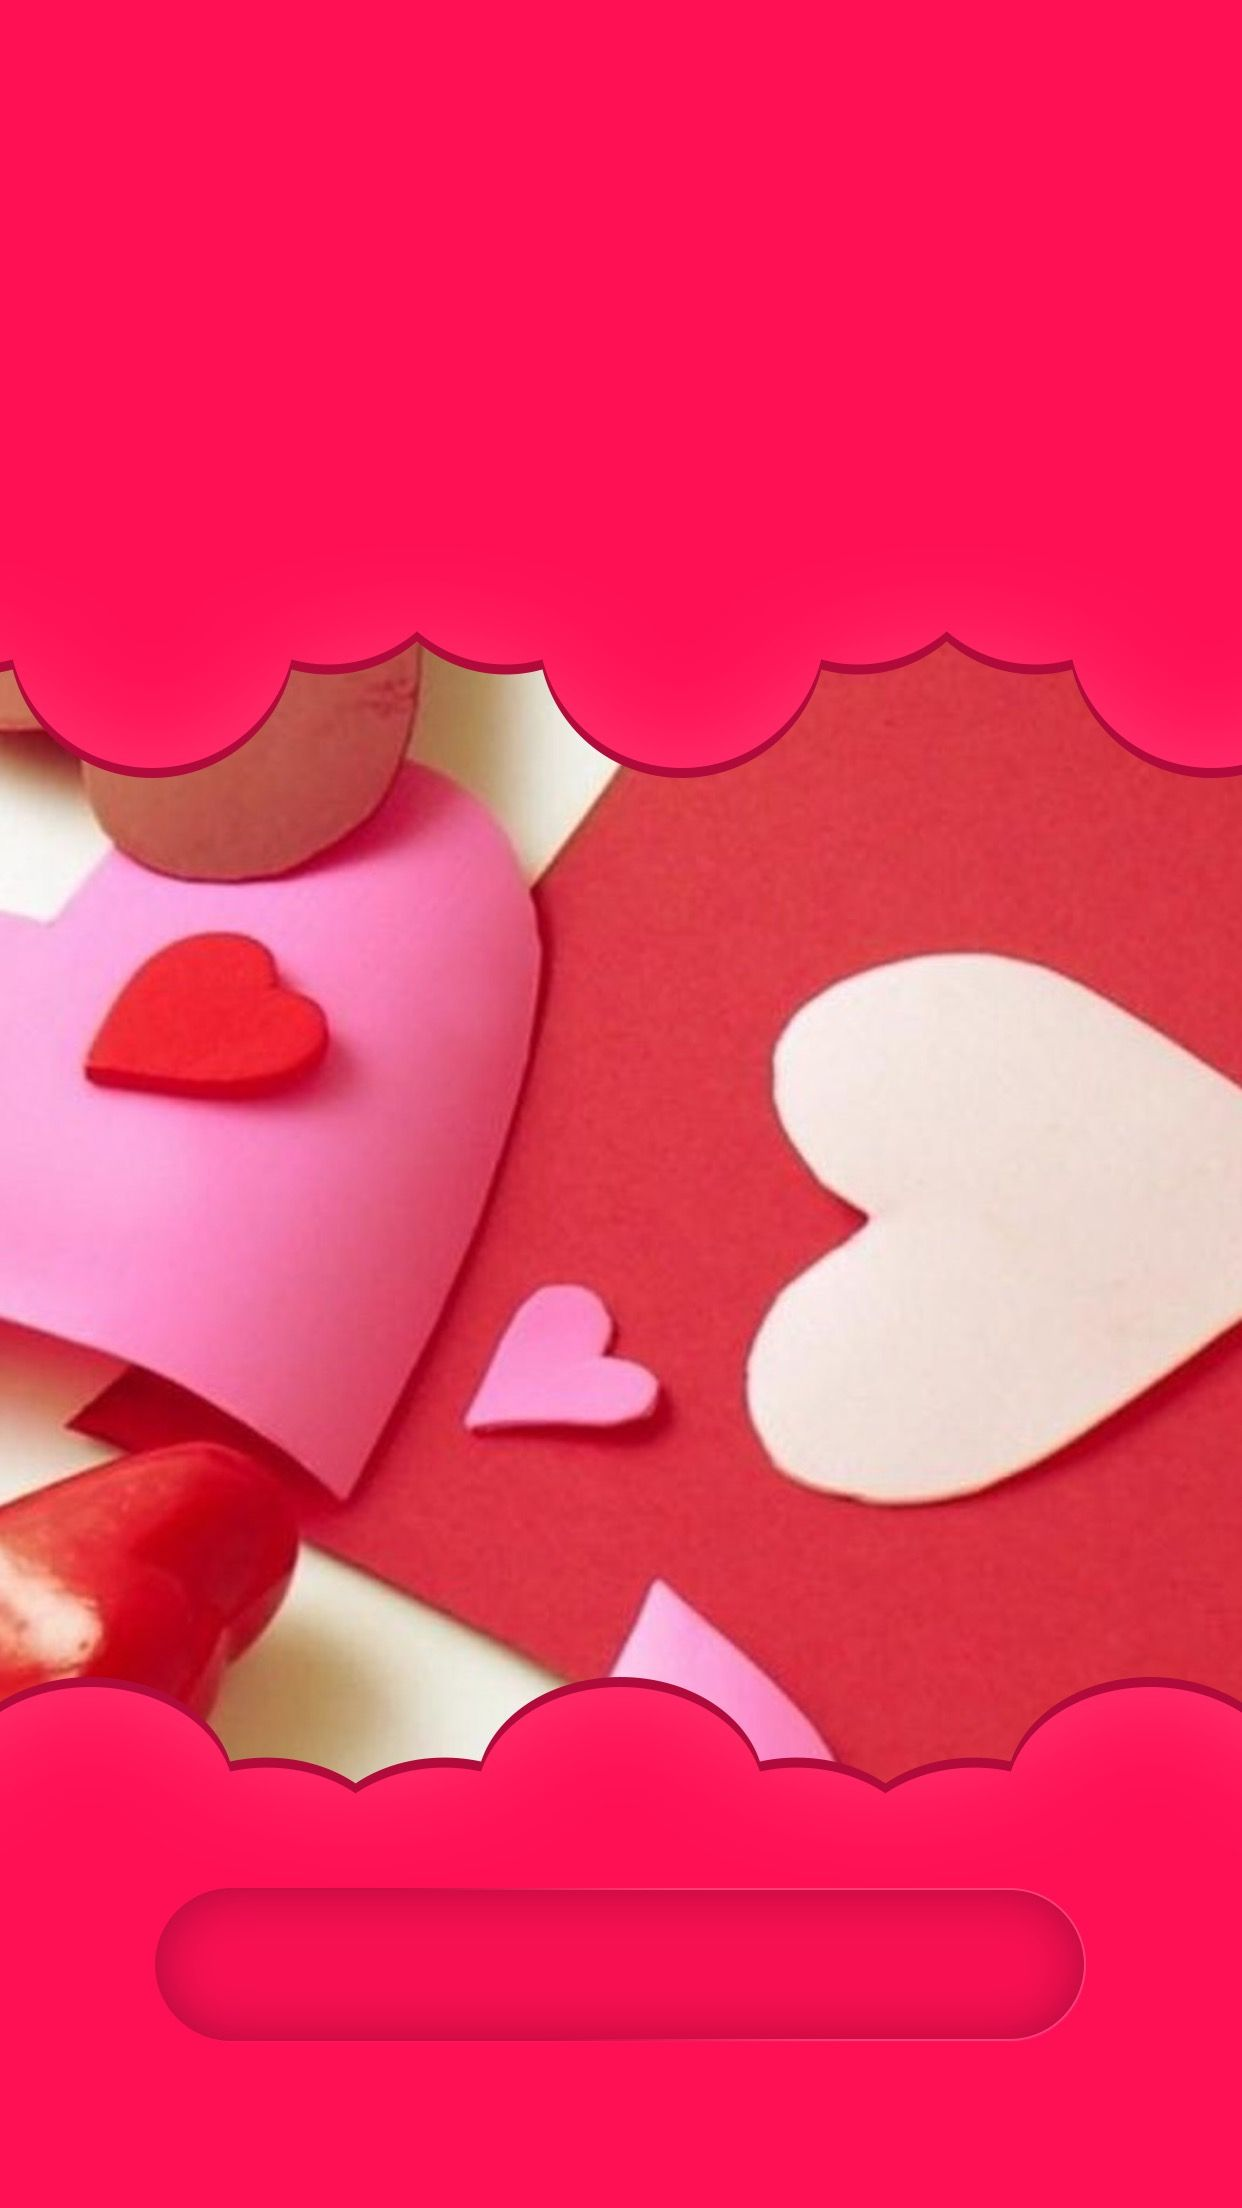 Tap And Get The Free App Lockscreens Art Creative Love Heart For Girls Pink Couple Hd Iphone 6 Iphone Wallpaper Girly Creative Art Iphone Wallpaper Vintage